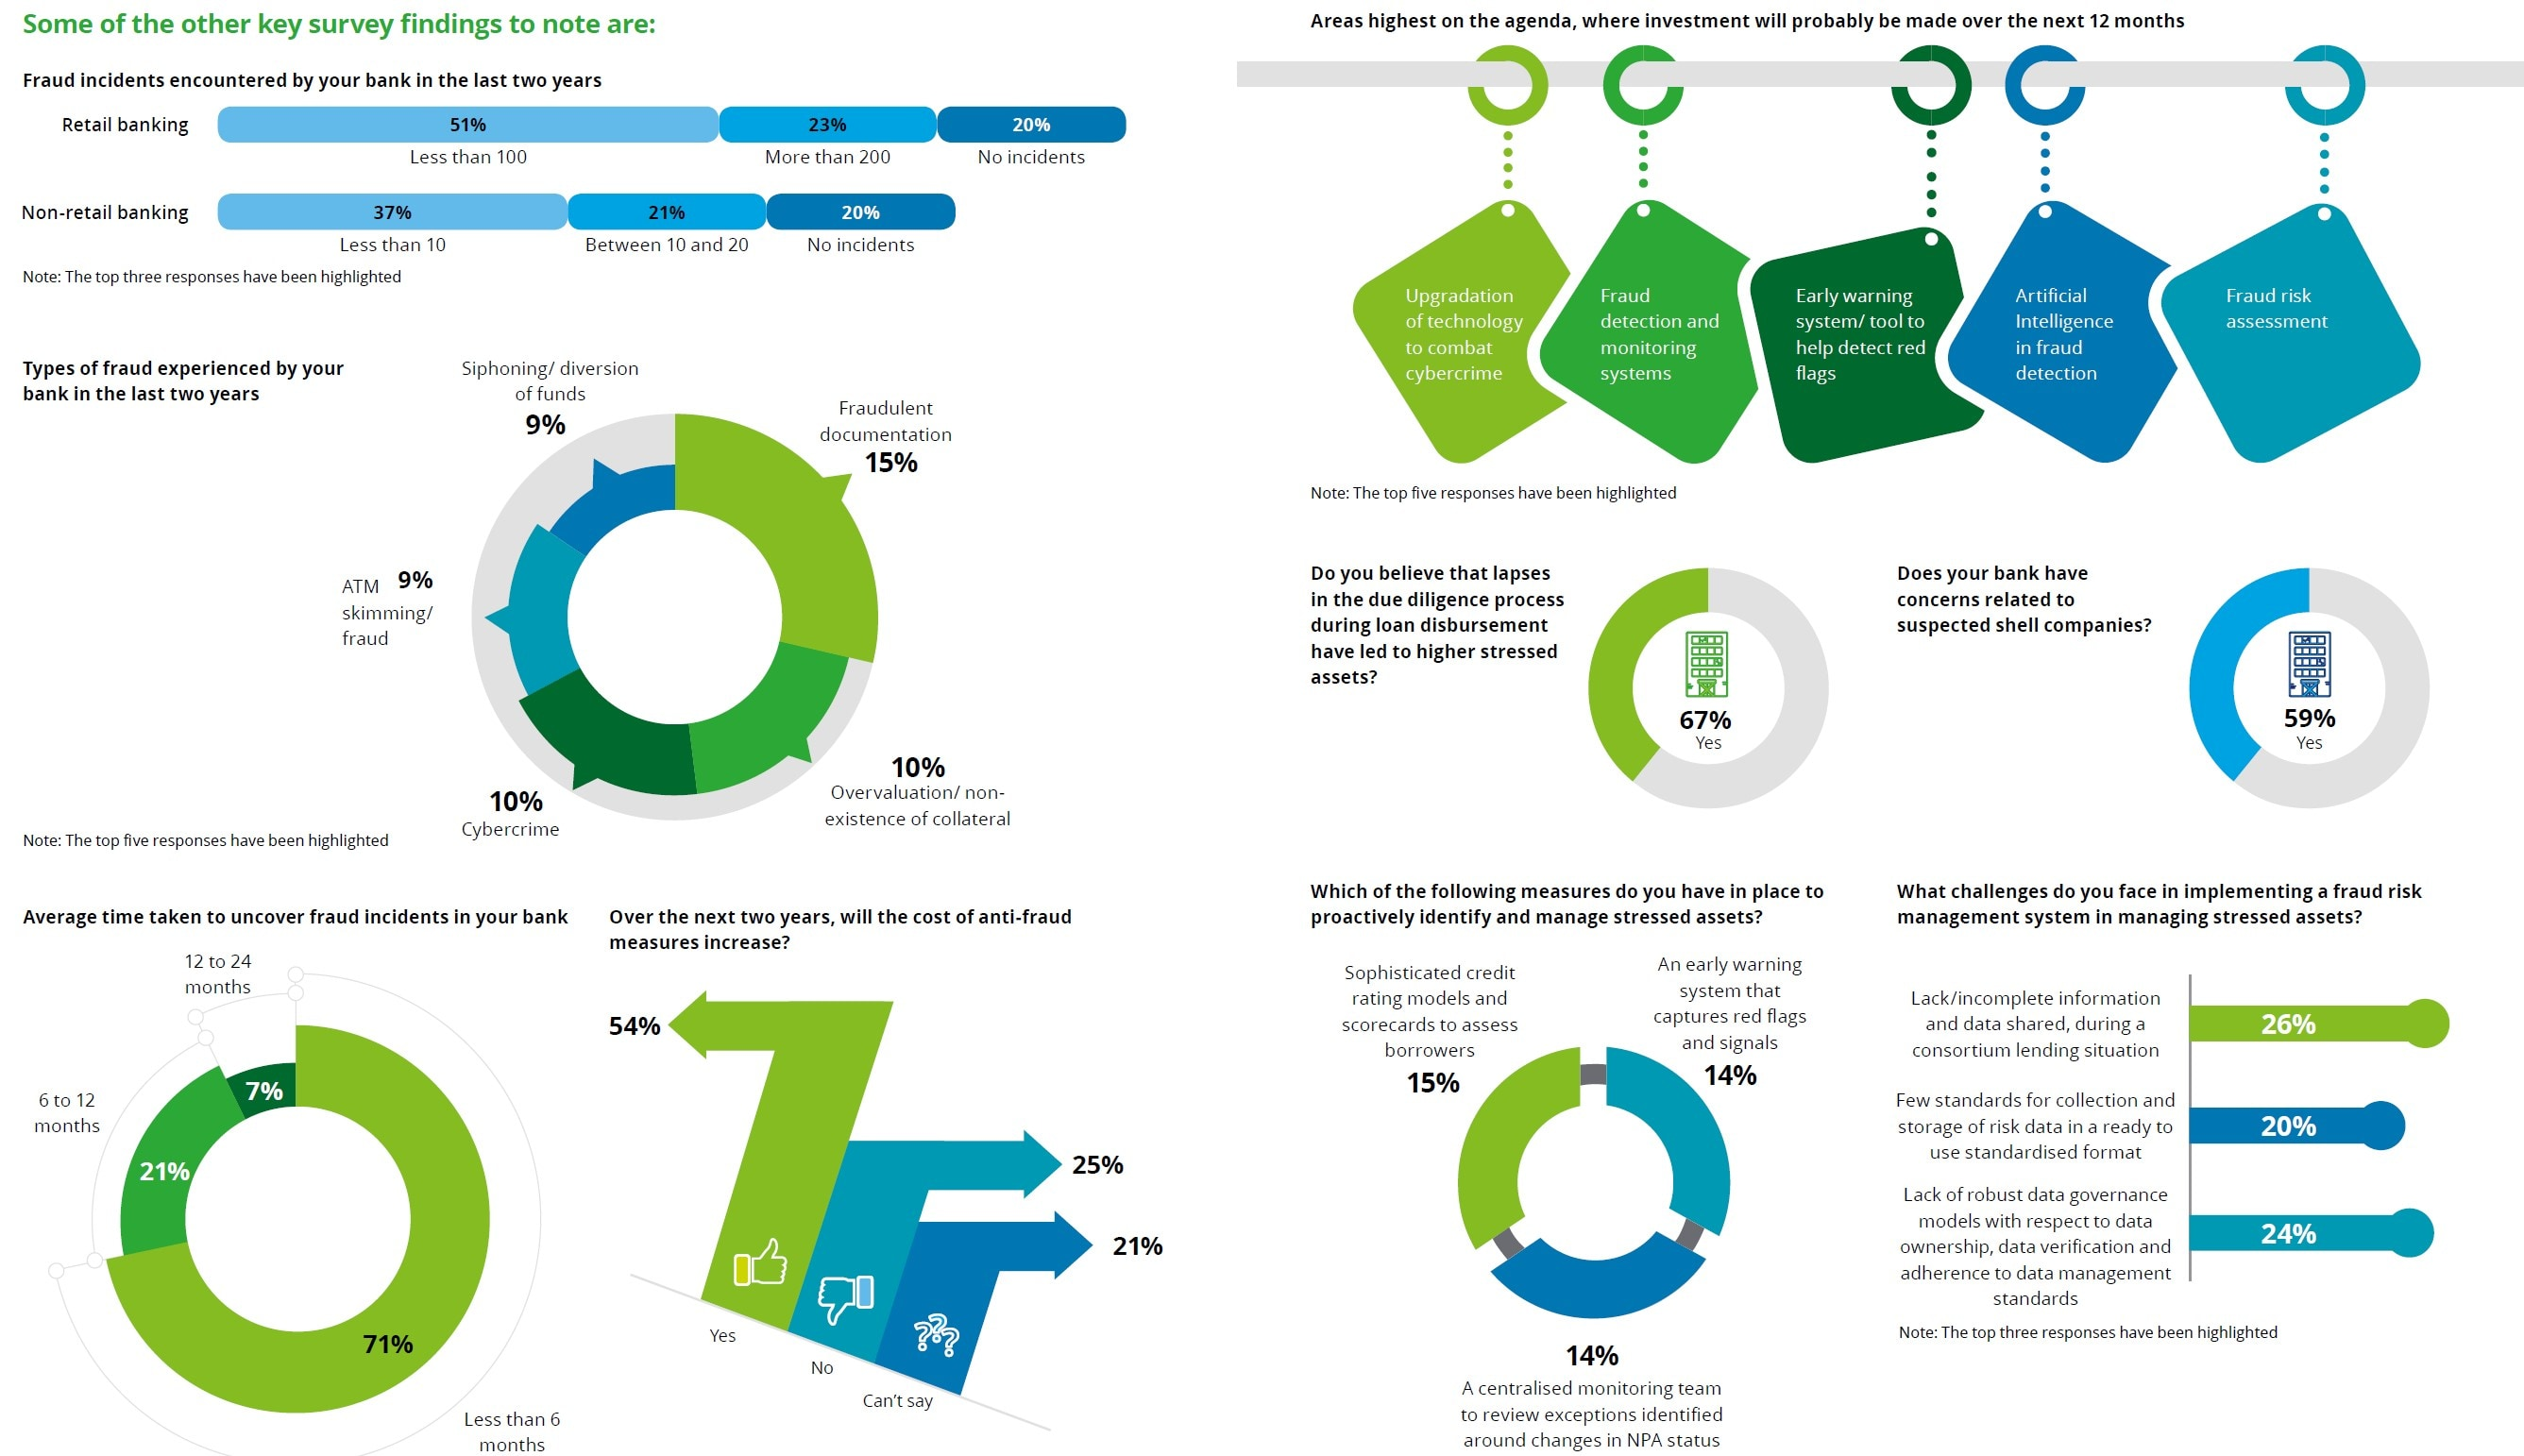 India Banking Fraud Survey - III | Deloitte India | Financial Advisory